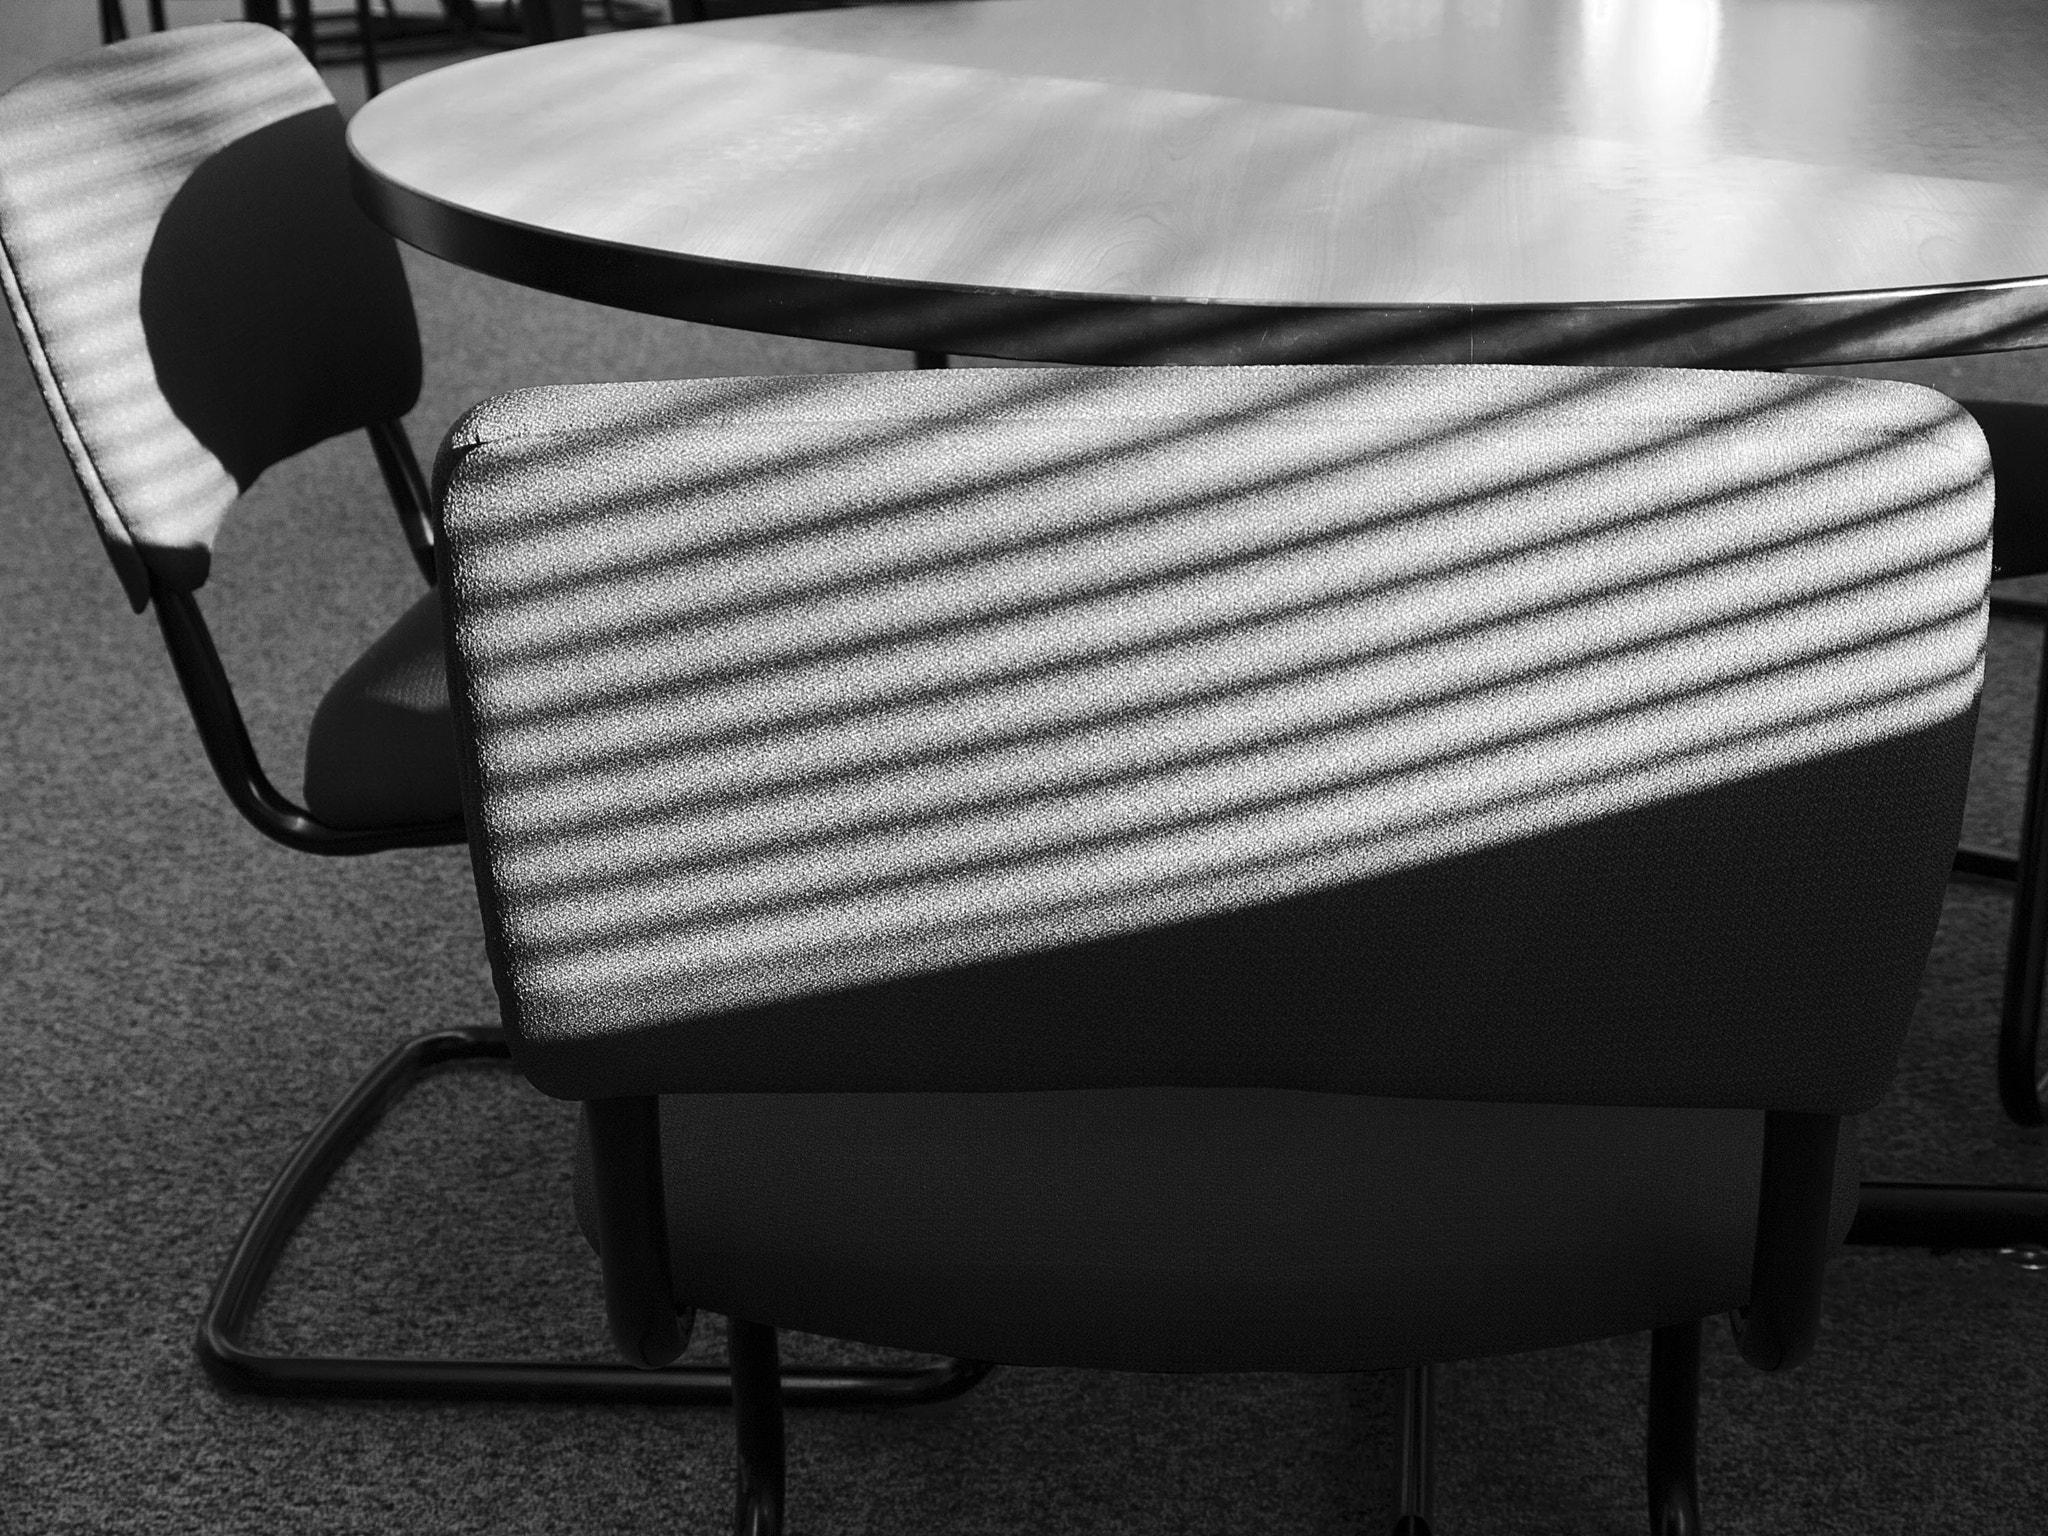 Photograph Etude with Chairs #8 by Milena Robinson on 500px